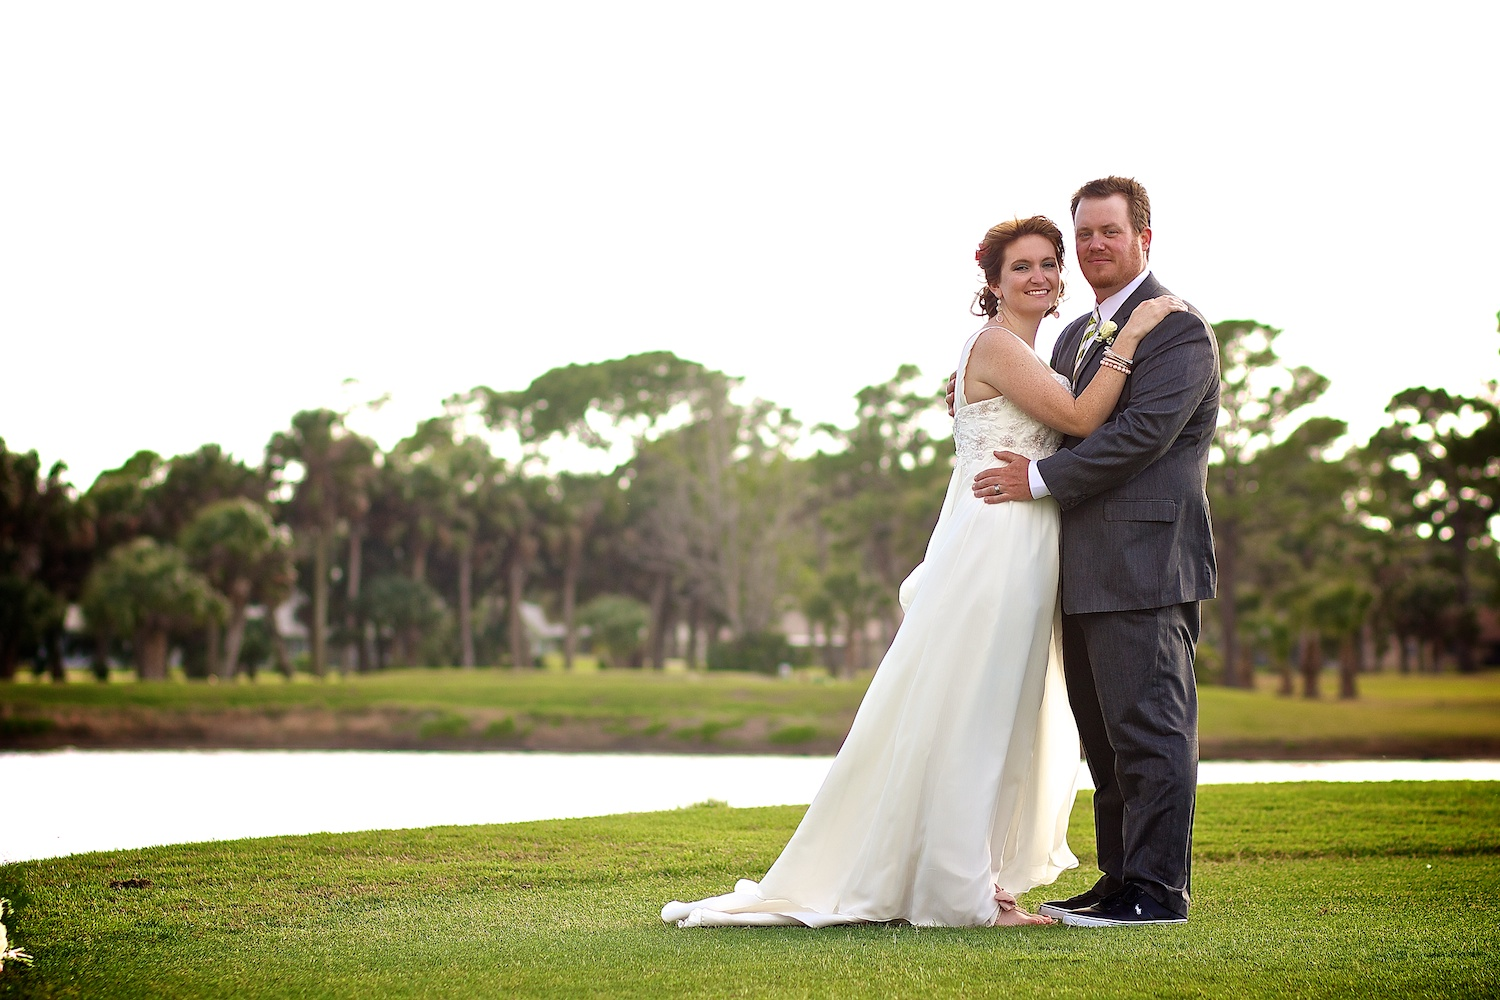 Bride and Groom on the Green